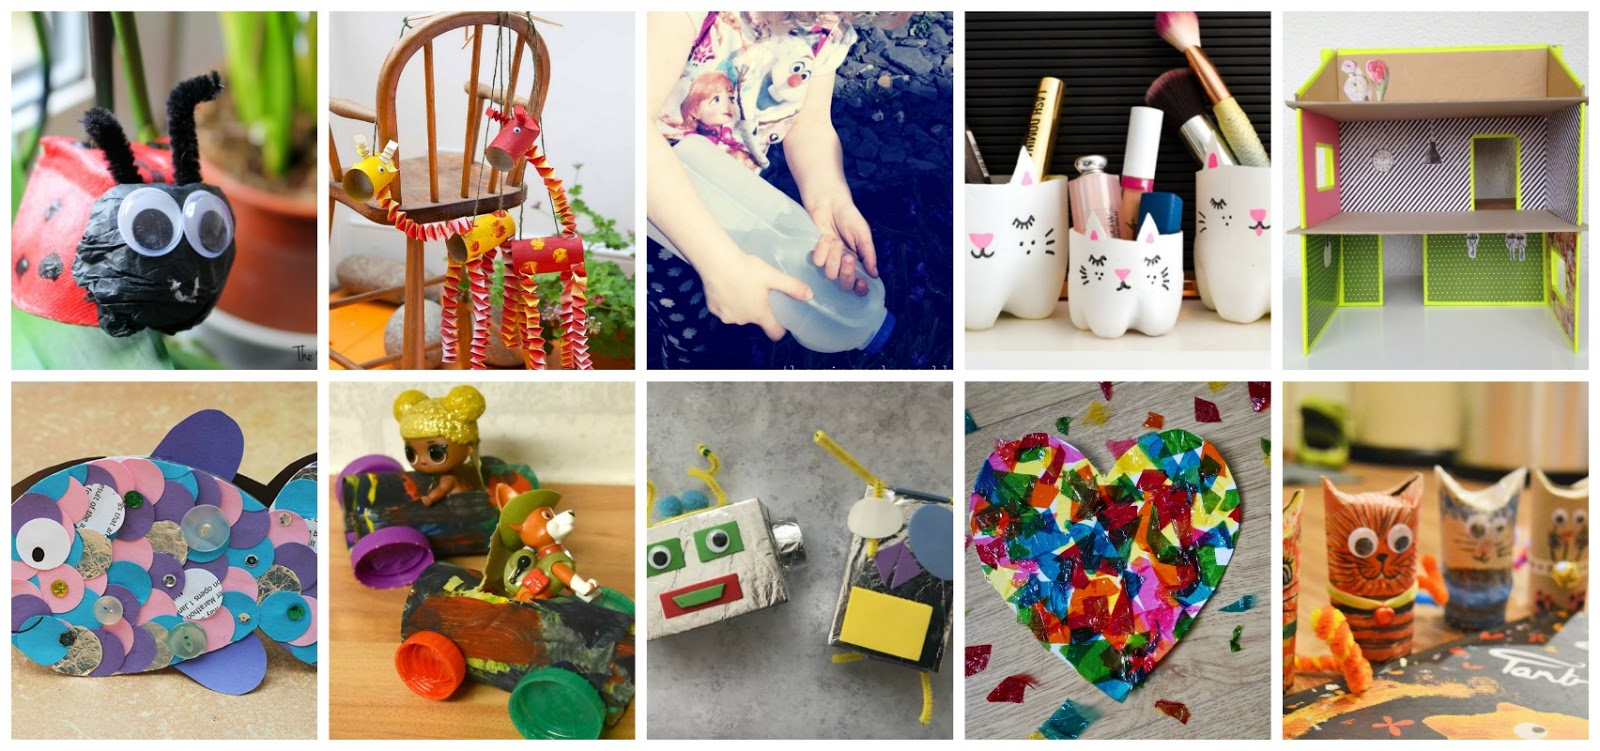 10 Fun Crafts For Kids Using Recycled Materials